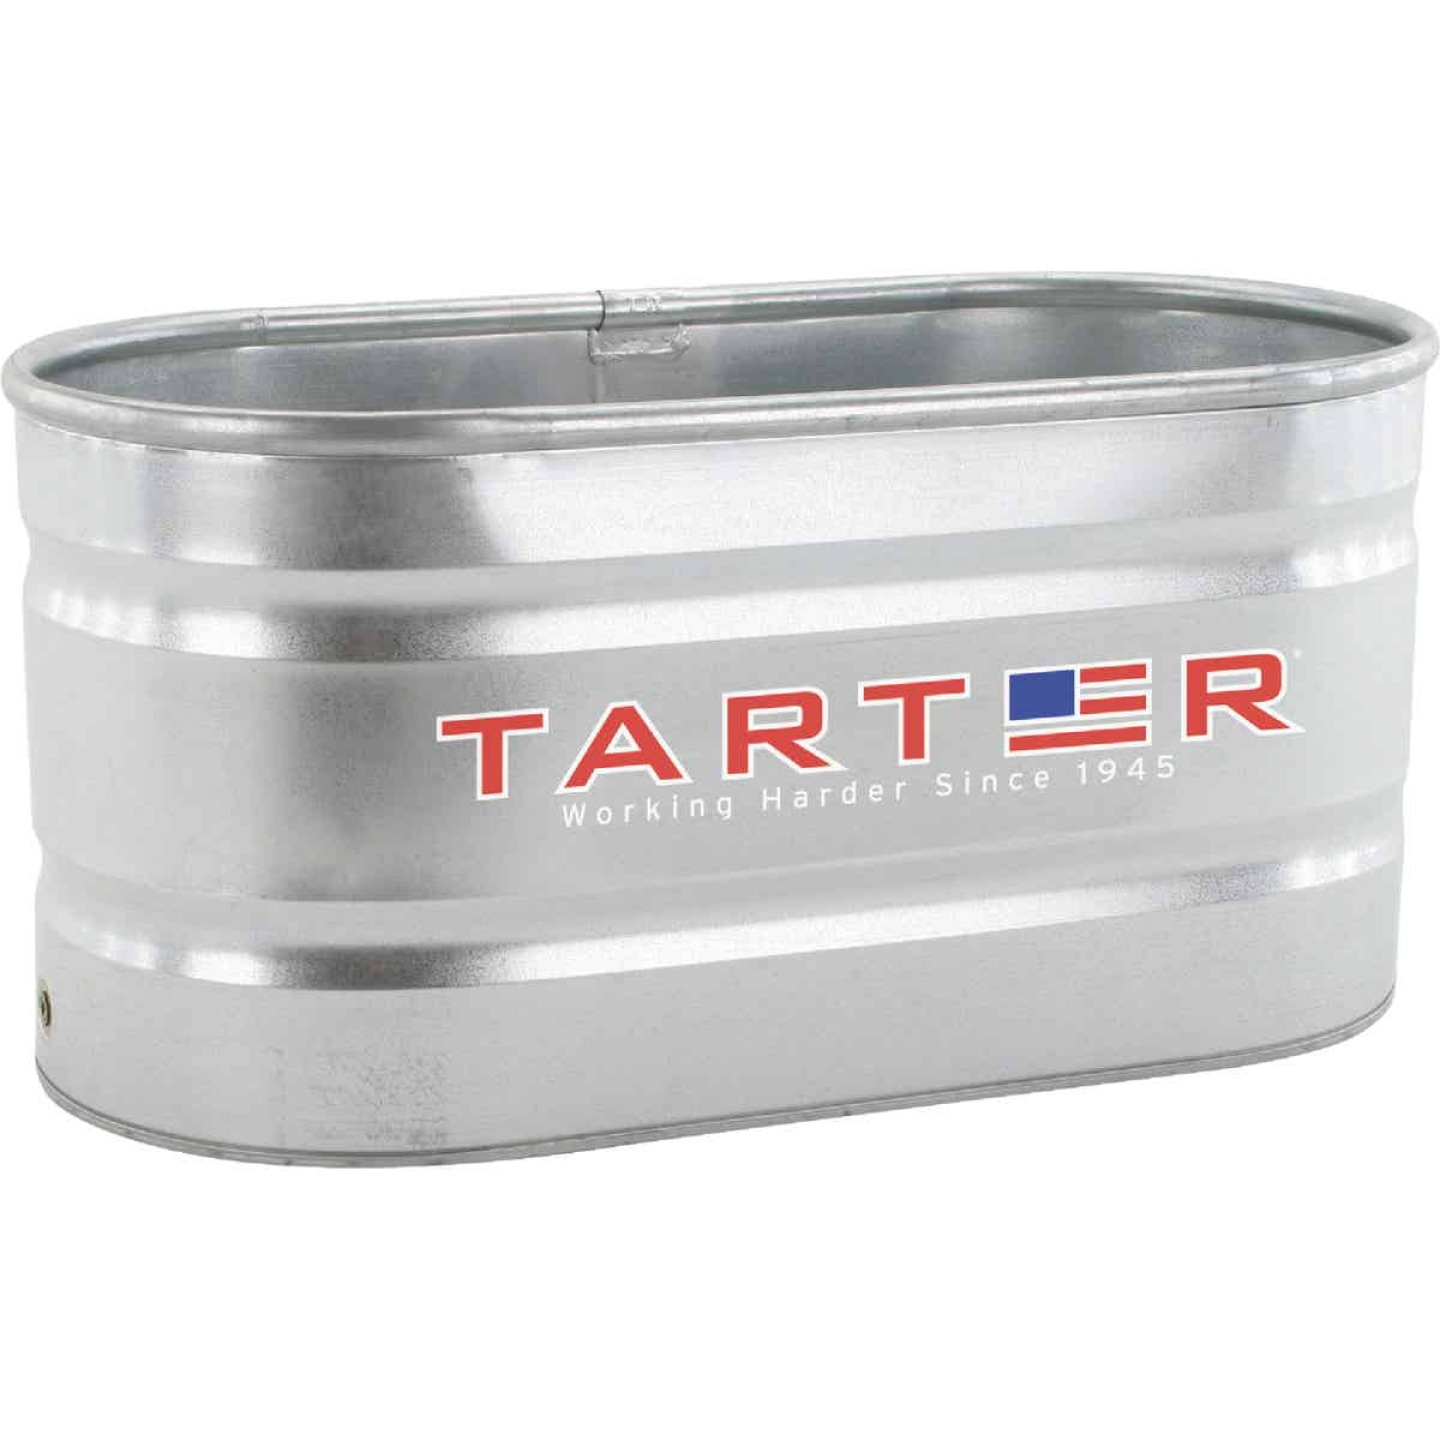 Tarter 100 Gal. Zinc-Coated Steel Galvanized Stock Tank Image 1